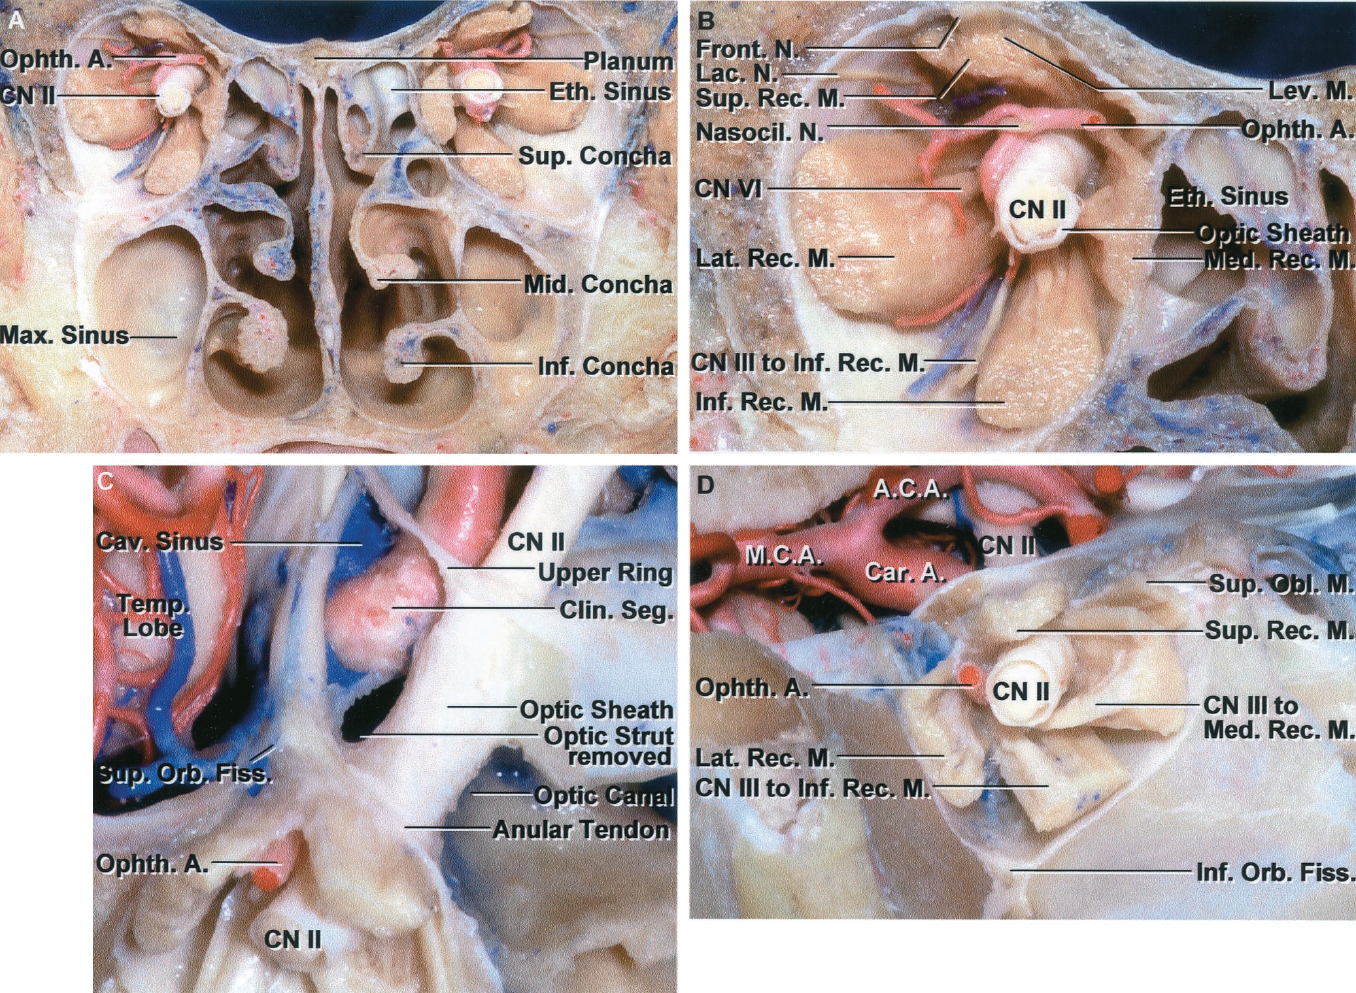 FIGURE 7.4. A-D. A, coronal section of orbits and cranial base anterior to the orbital apex. The floor of the orbit faces the maxillary sinus and the medial wall faces the ethmoid air cells. The inferior concha is a separate bone attached to the medial maxillary wall. The middle turbinate, an appendage of the ethmoid bone, attaches to the lateral nasal wall at the level of the roof of the maxillary sinus. B, enlarged view of right side shown in A. The ophthalmic artery enters the orbit on the lateral side of the optic nerve and crosses medially above the nerve. The abducens nerve enters the medial surface of the lateral rectus muscle. The optic nerve is enclosed in the optic sheath. The nerve to the inferior oblique muscle courses along the lateral edge of the inferior rectus muscle. C, anterosuperior view showing the relationship of the orbital apex to the optic strut, optic canal, and superior orbital fissure. The optic strut, which has been removed, separates the optic nerve in the optic canal from the superior orbital fissure. The optic nerve enters the orbit on the medial side of the optic strut and the oculomotor, trochlear, abducens, and ophthalmic nerves enter the orbit on the lateral side of the strut. The rectus muscles arise from the annular tendon, which encircles the optic canal and the central part of the superior orbital fissure. The anterior clinoid process has been removed to expose the clinoid segment of the internal carotid artery. The upper dural ring surrounds the carotid artery at the upper edge of the clinoid segment. D, cross section of right orbit just in front of the apex. The ophthalmic artery enters the orbit on the lateral side of the optic nerve. The branch of the inferior division of the oculomotor nerve to the medial rectus muscle passes below the optic nerve.